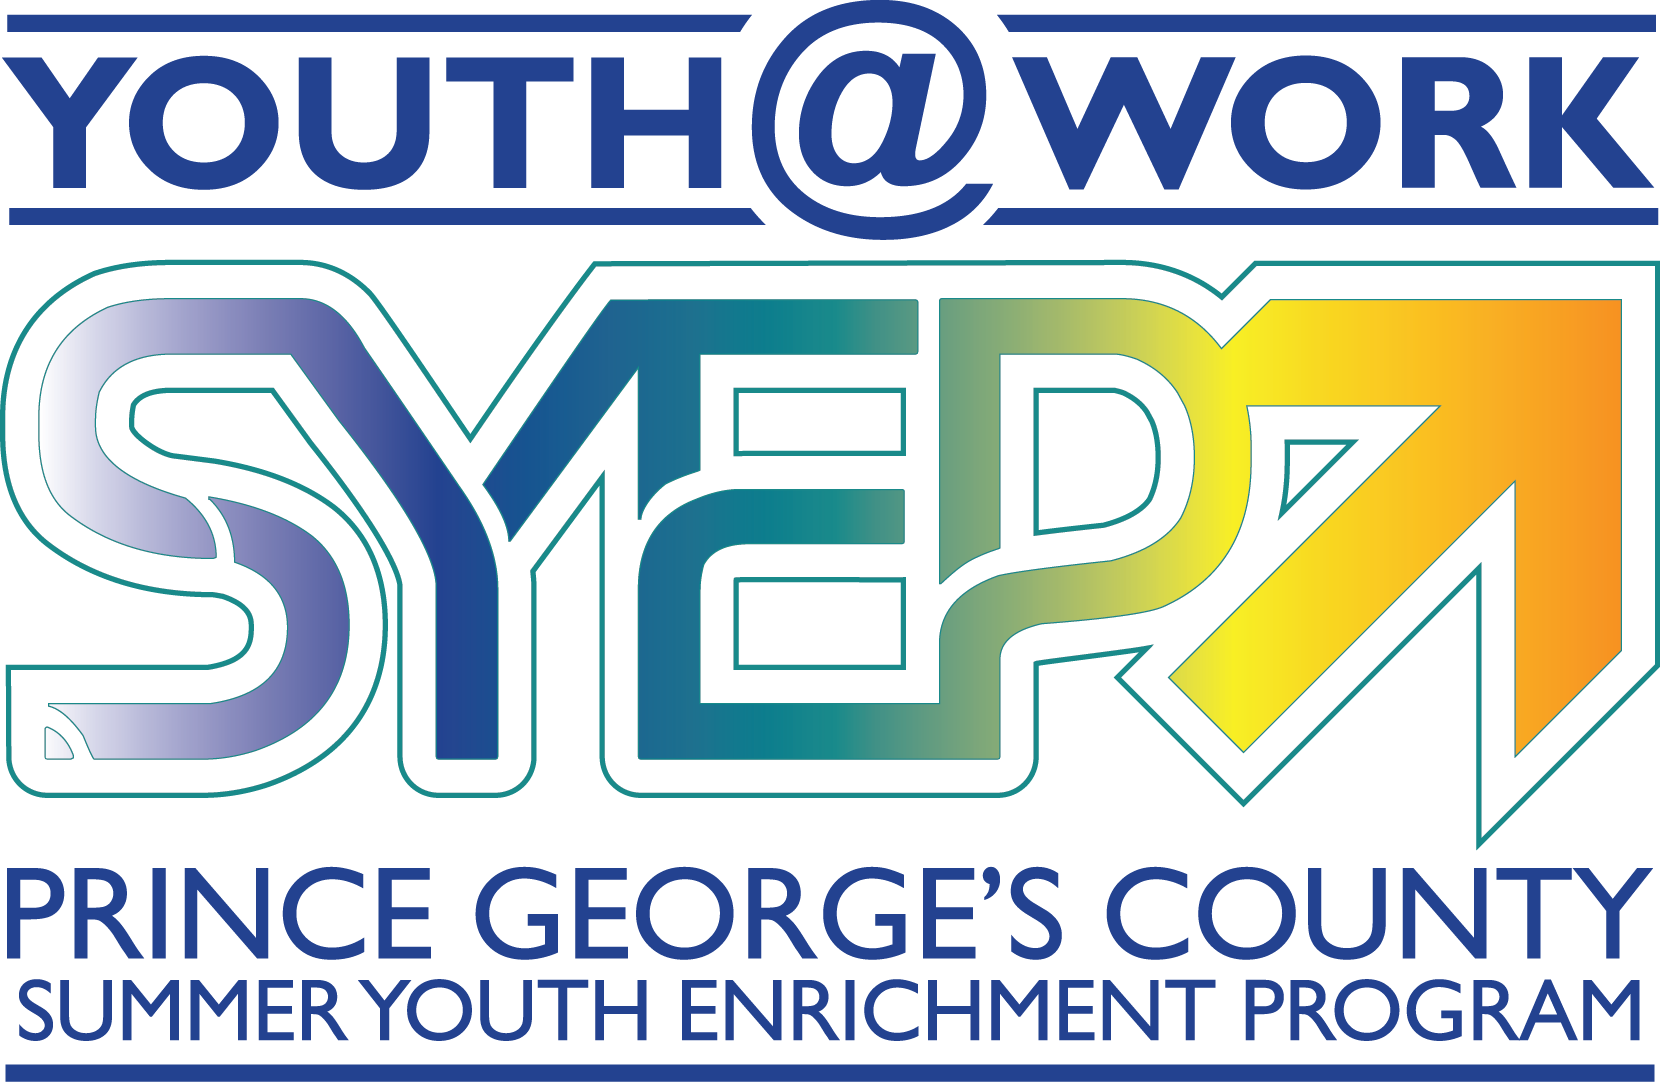 Youth @ Work